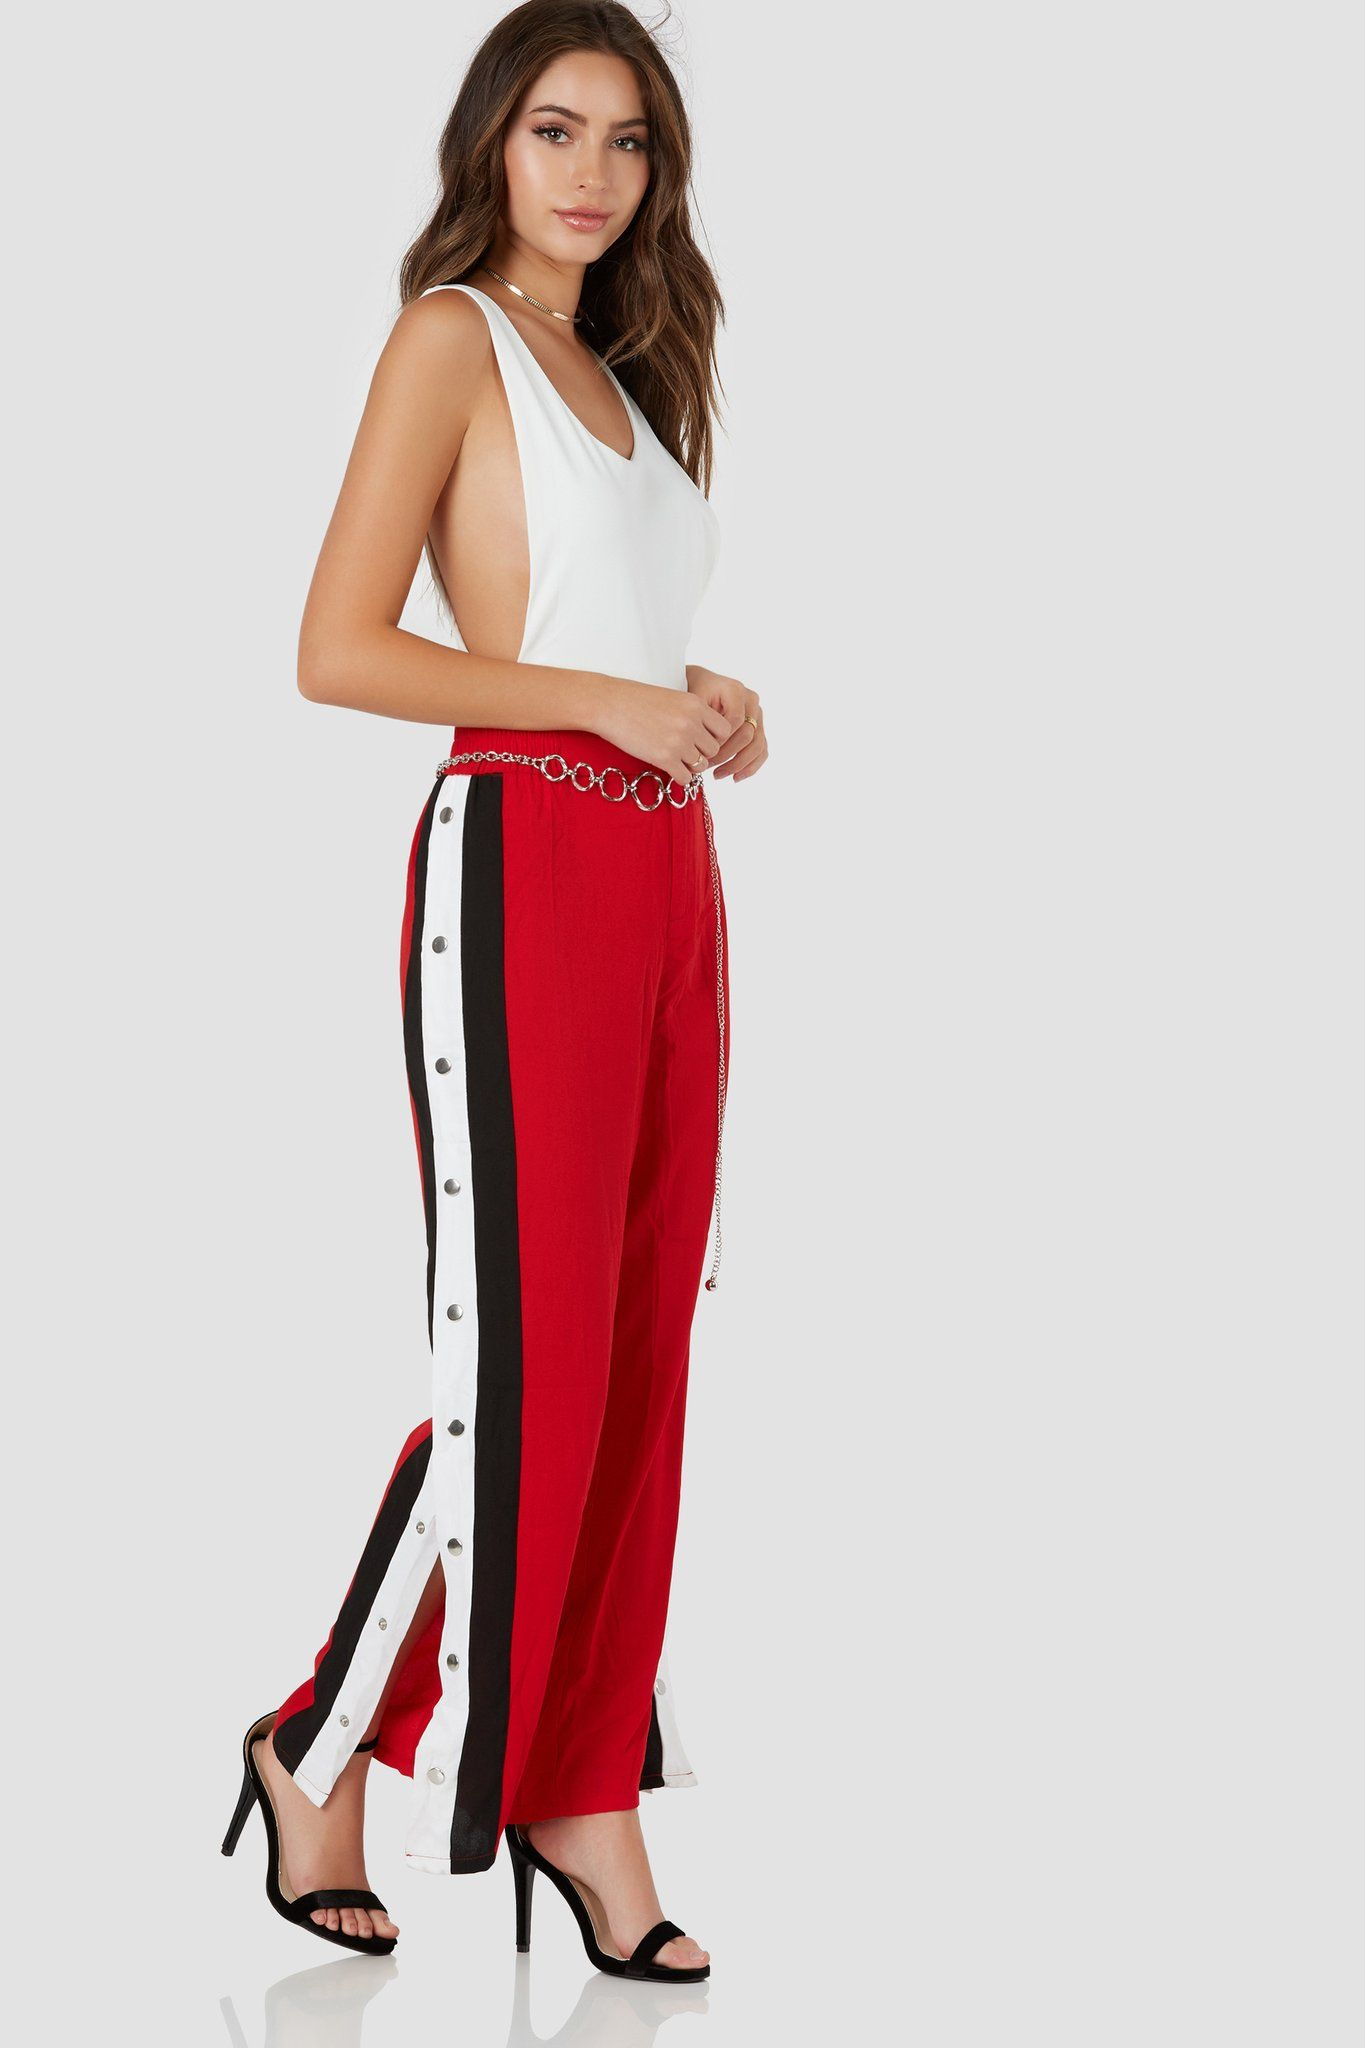 804cecd1a Trendy high rise pants with button zip closure. Contrast stripe detailing  with snap buttons down each side.